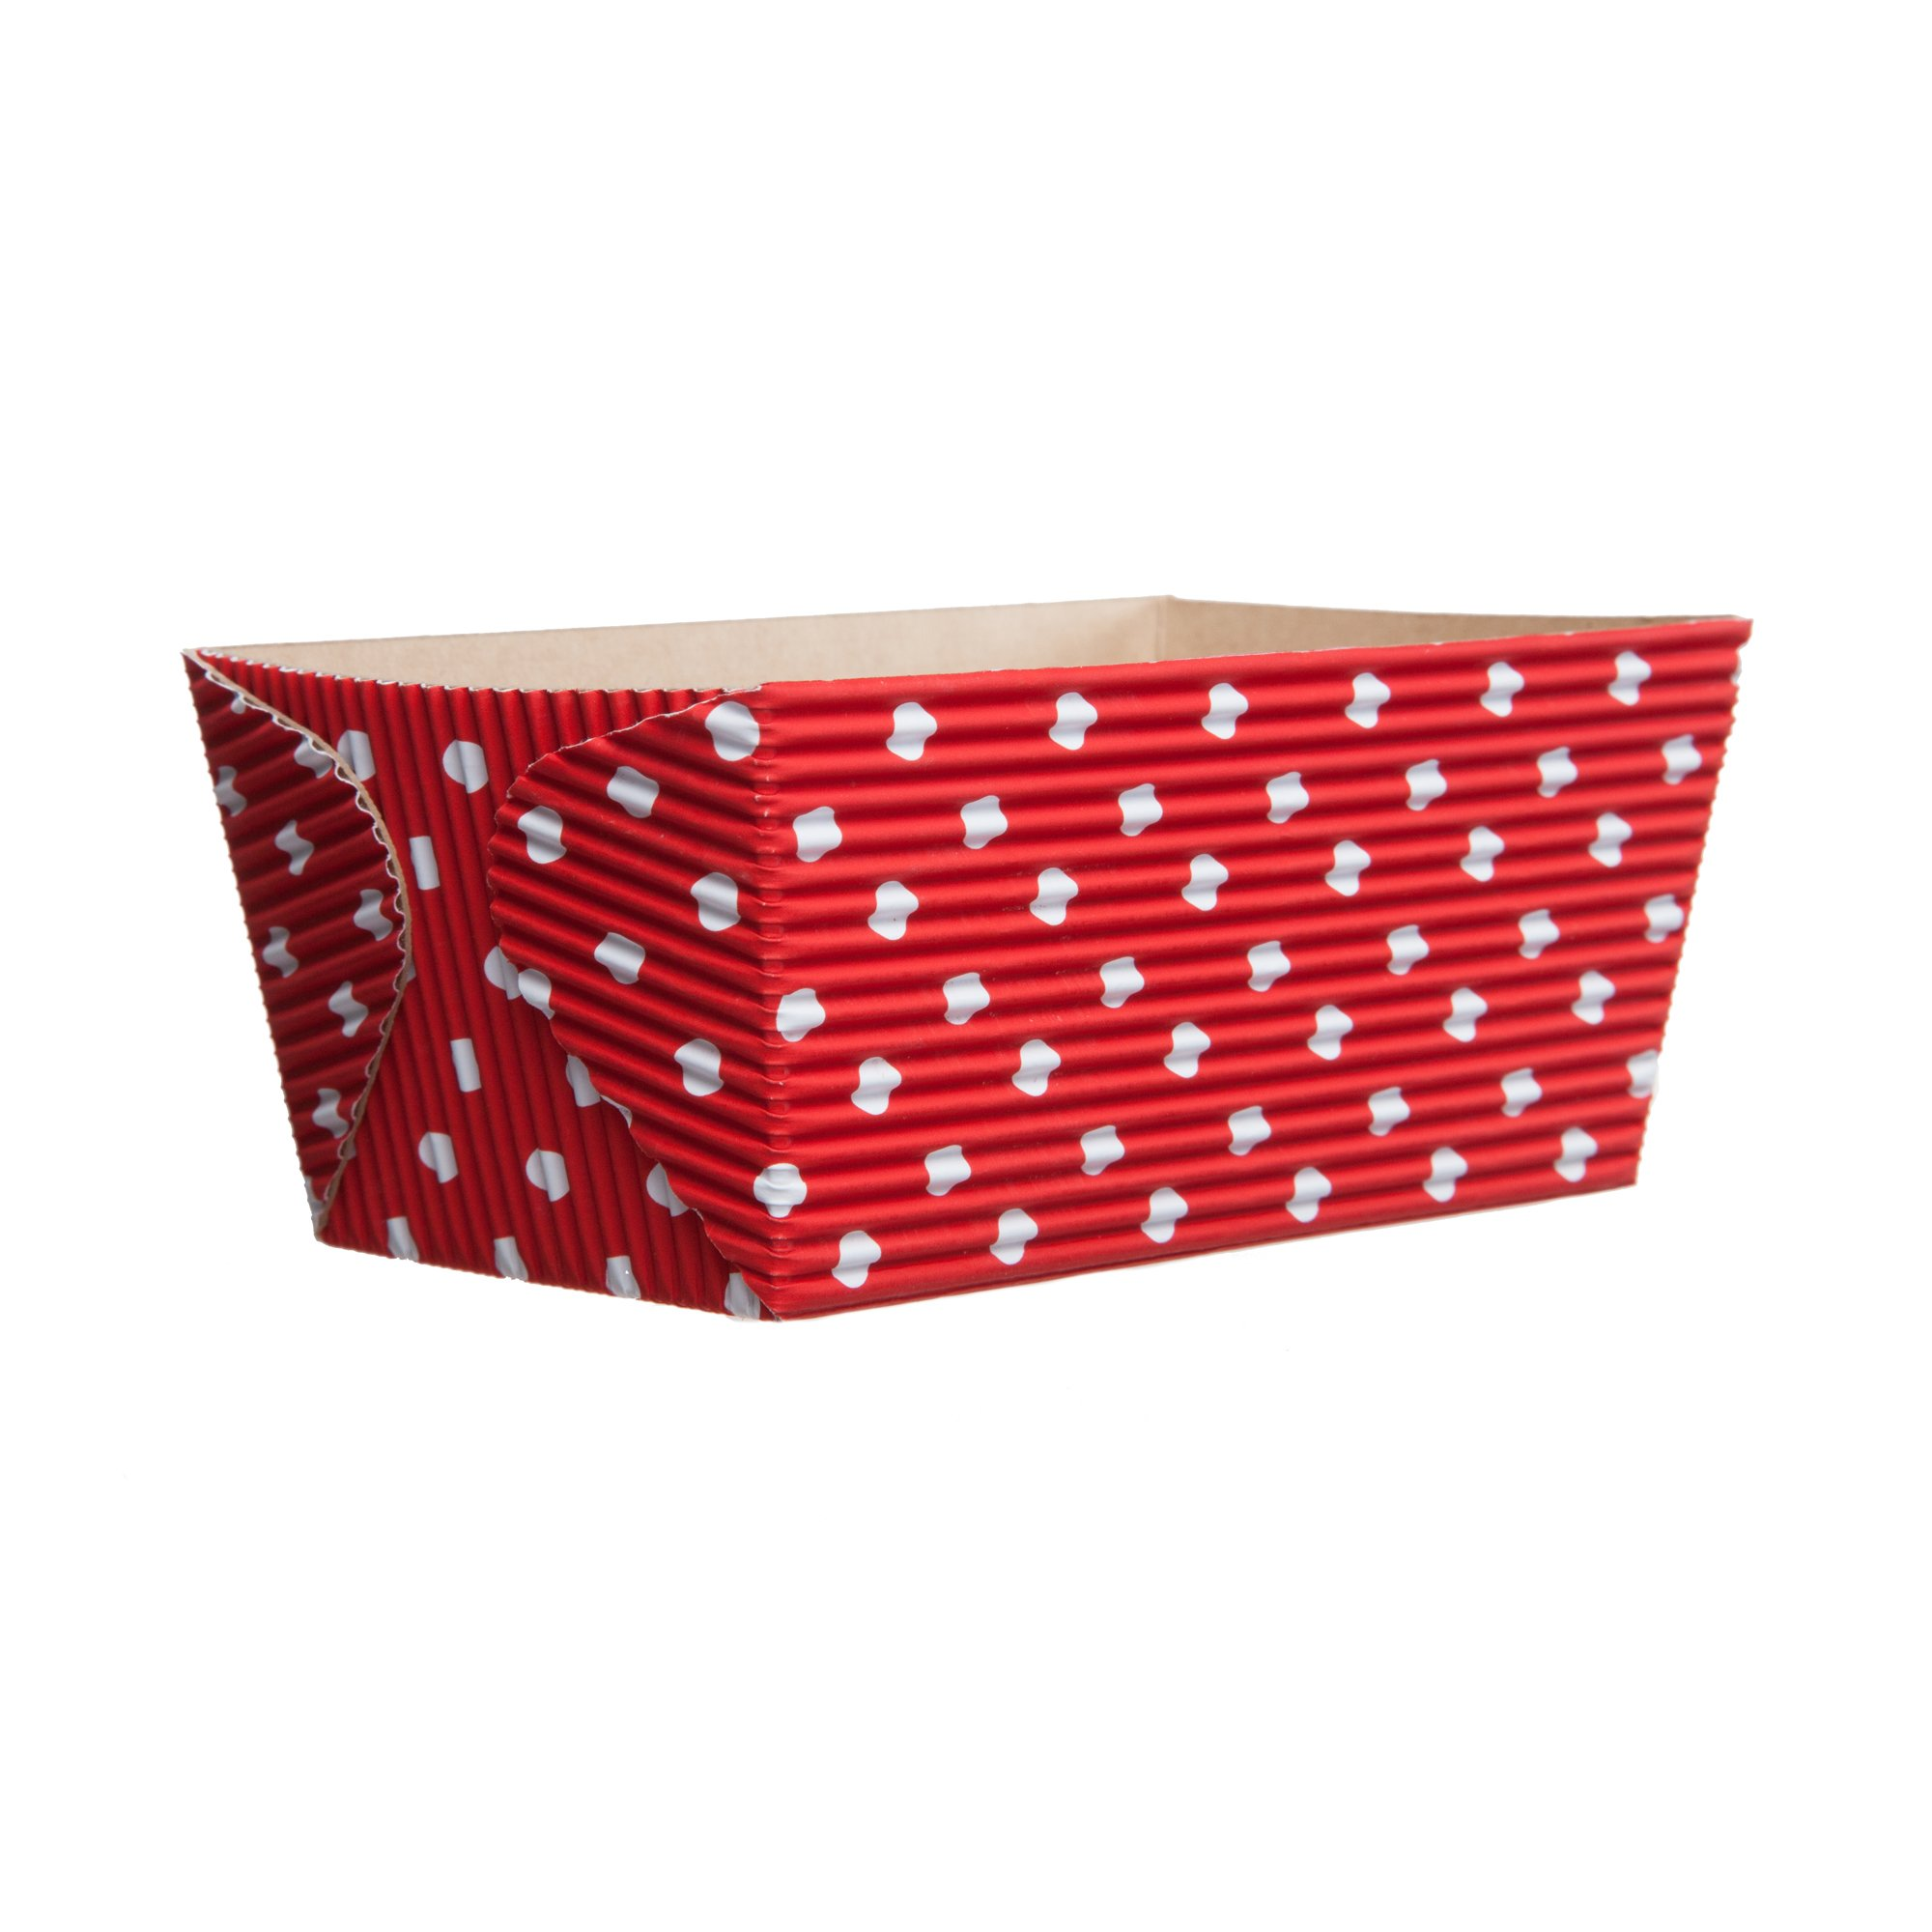 Welcome Home Brands Rectangular Loaf Baking Pans, Red Dot, 4.5''l x 2.5''w x 2.3''h, Pack/25